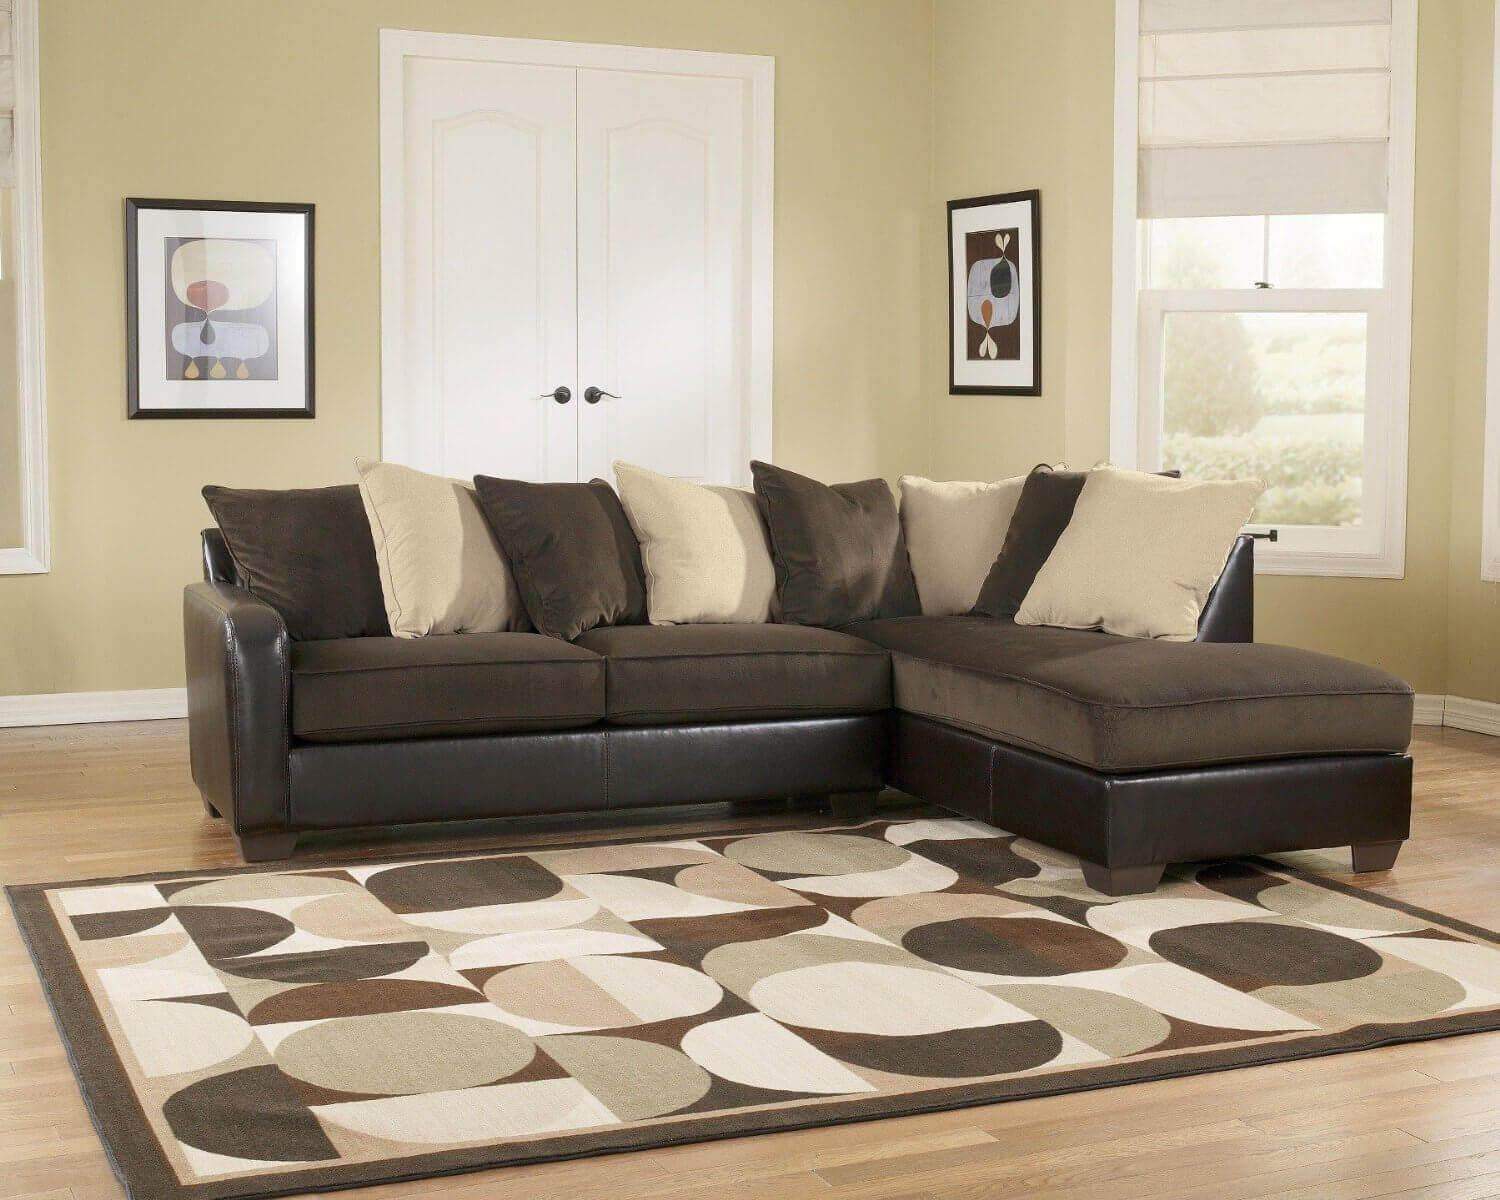 100 Beautiful Sectional Sofas Under $1,000 With Cream Sectional Leather Sofas (Image 2 of 22)